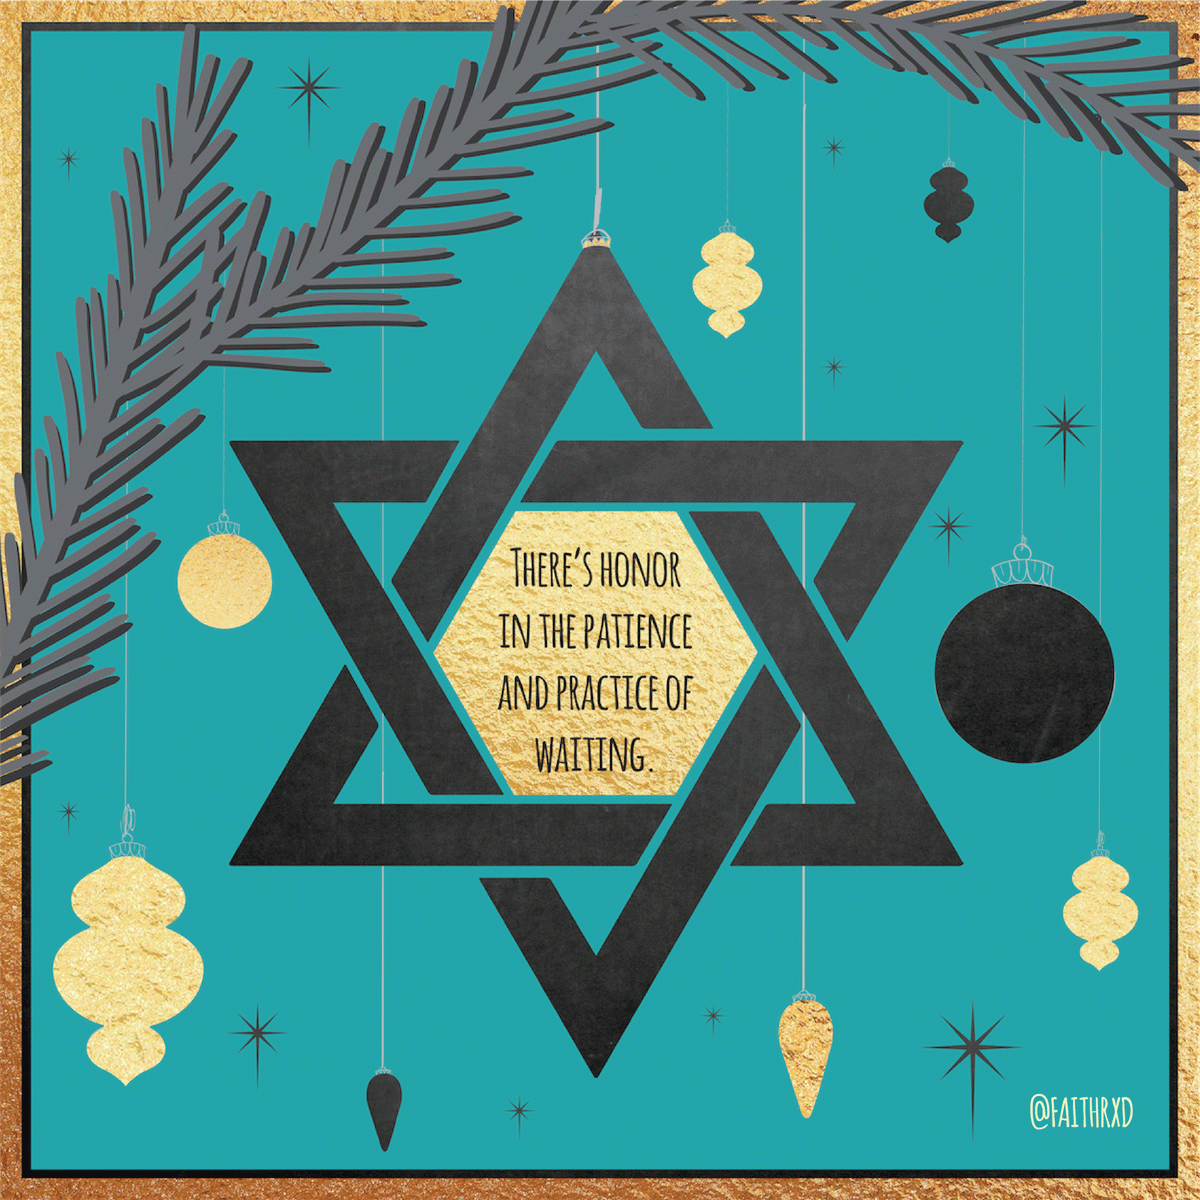 The Jewish Nation: The Gift of Waiting